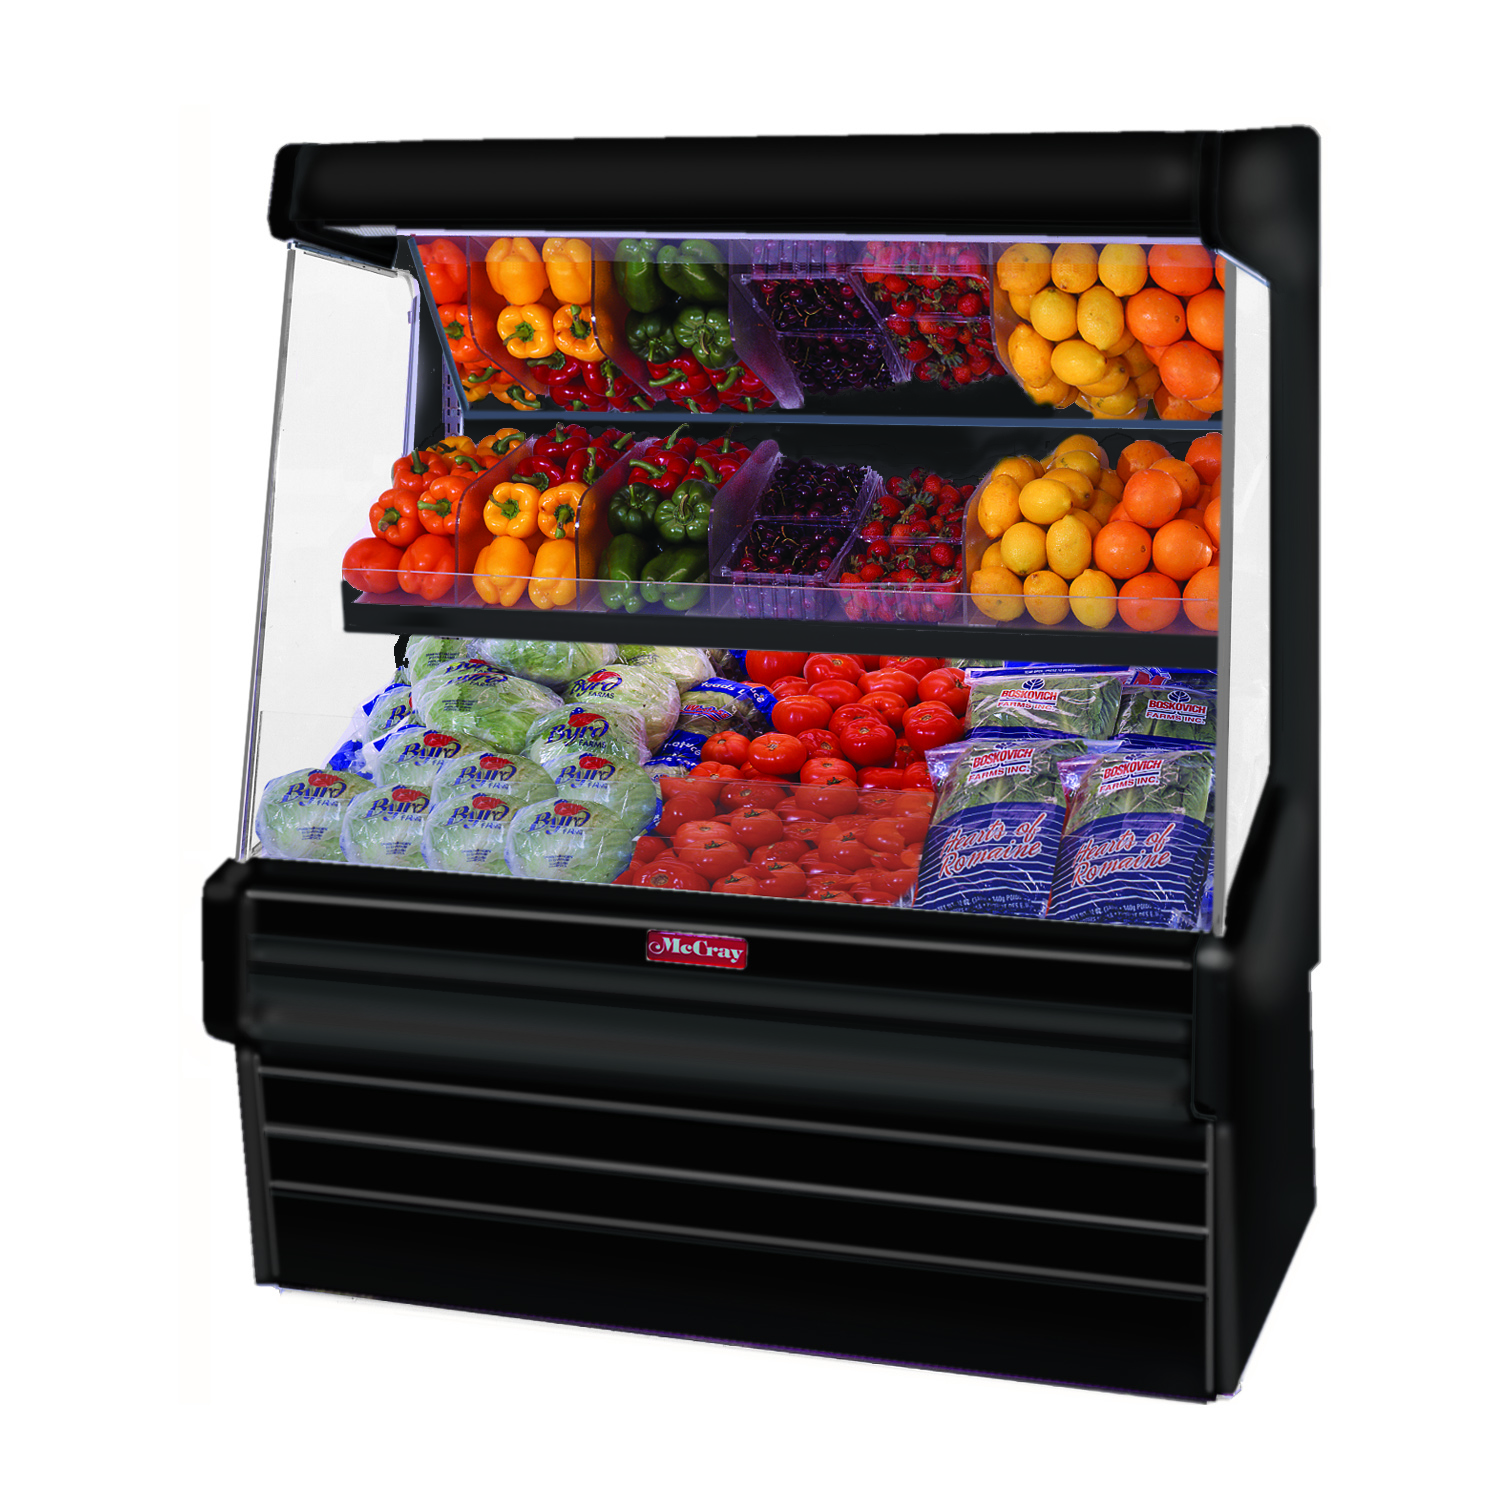 Howard-McCray R-OP30E-5L-B-LED display case, produce